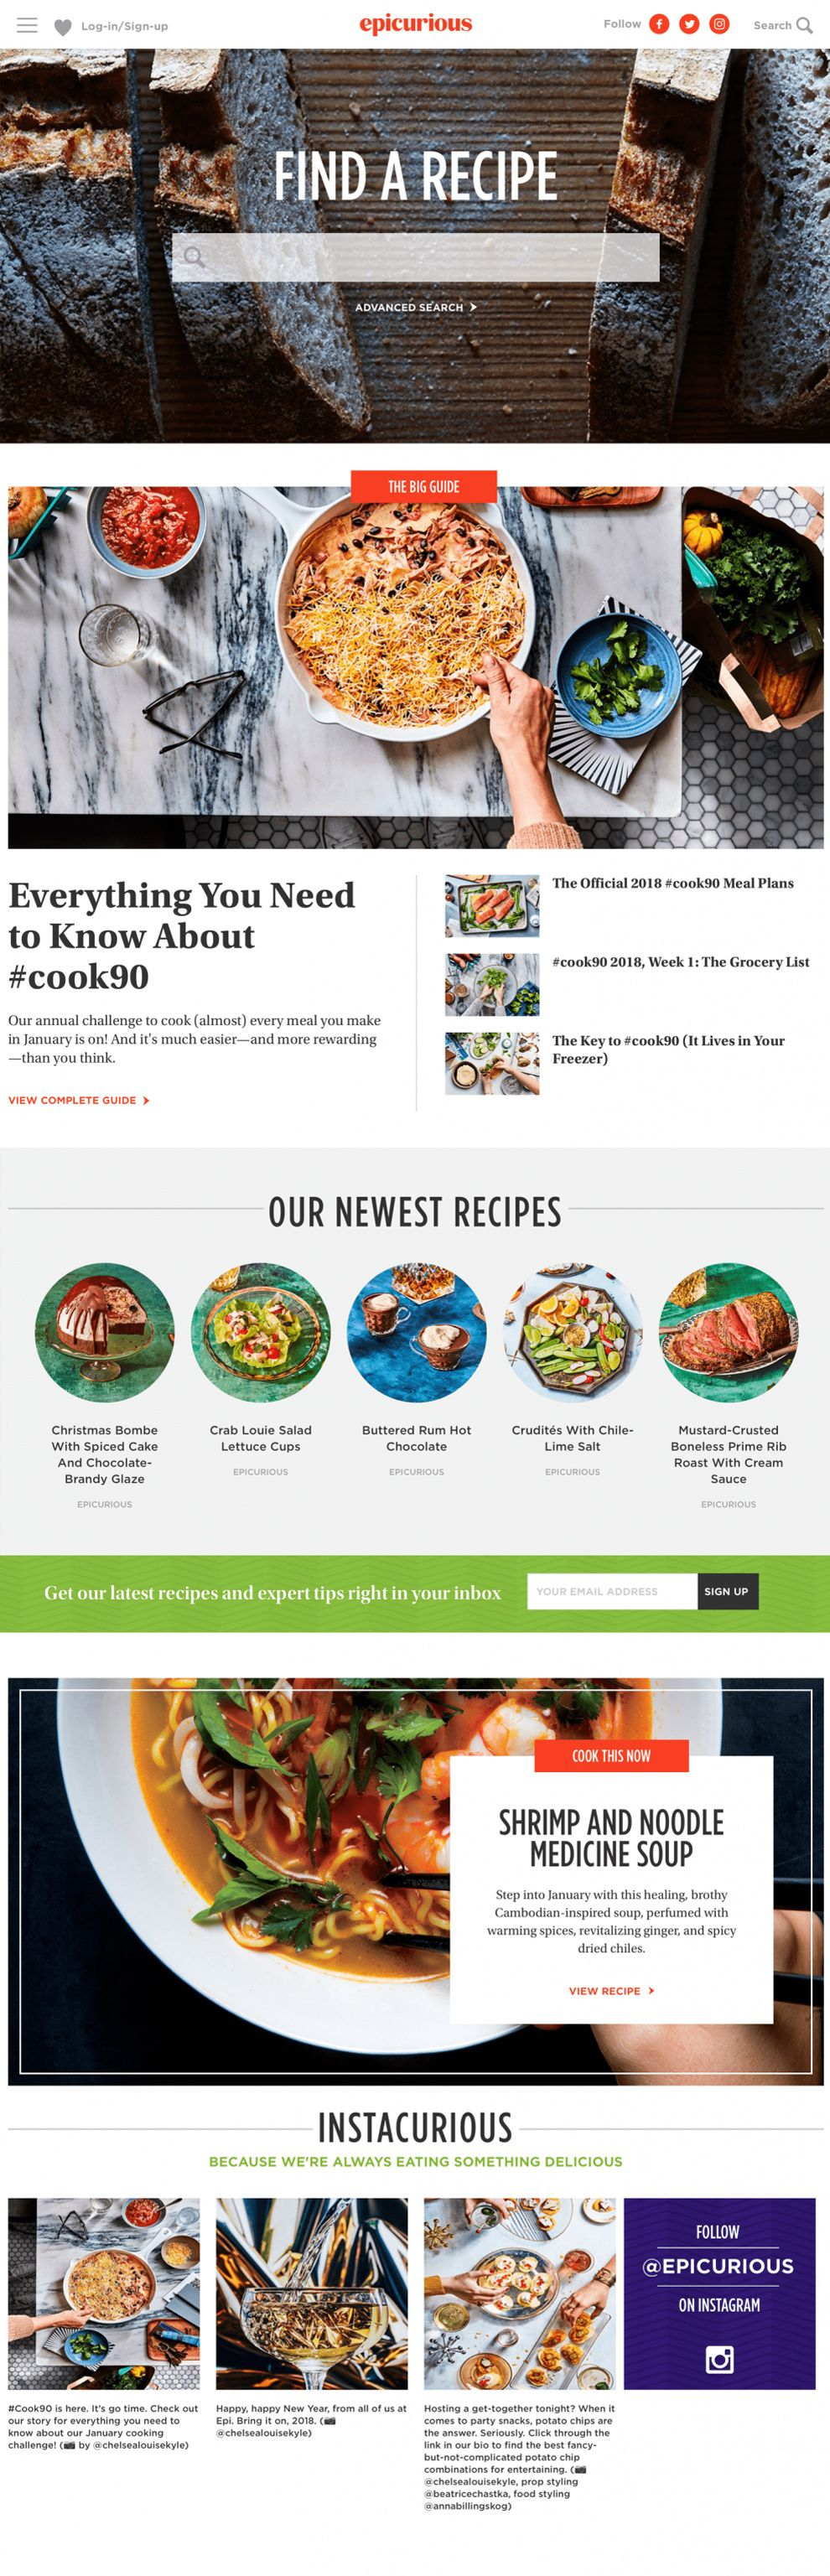 Epicurious Great Homepage